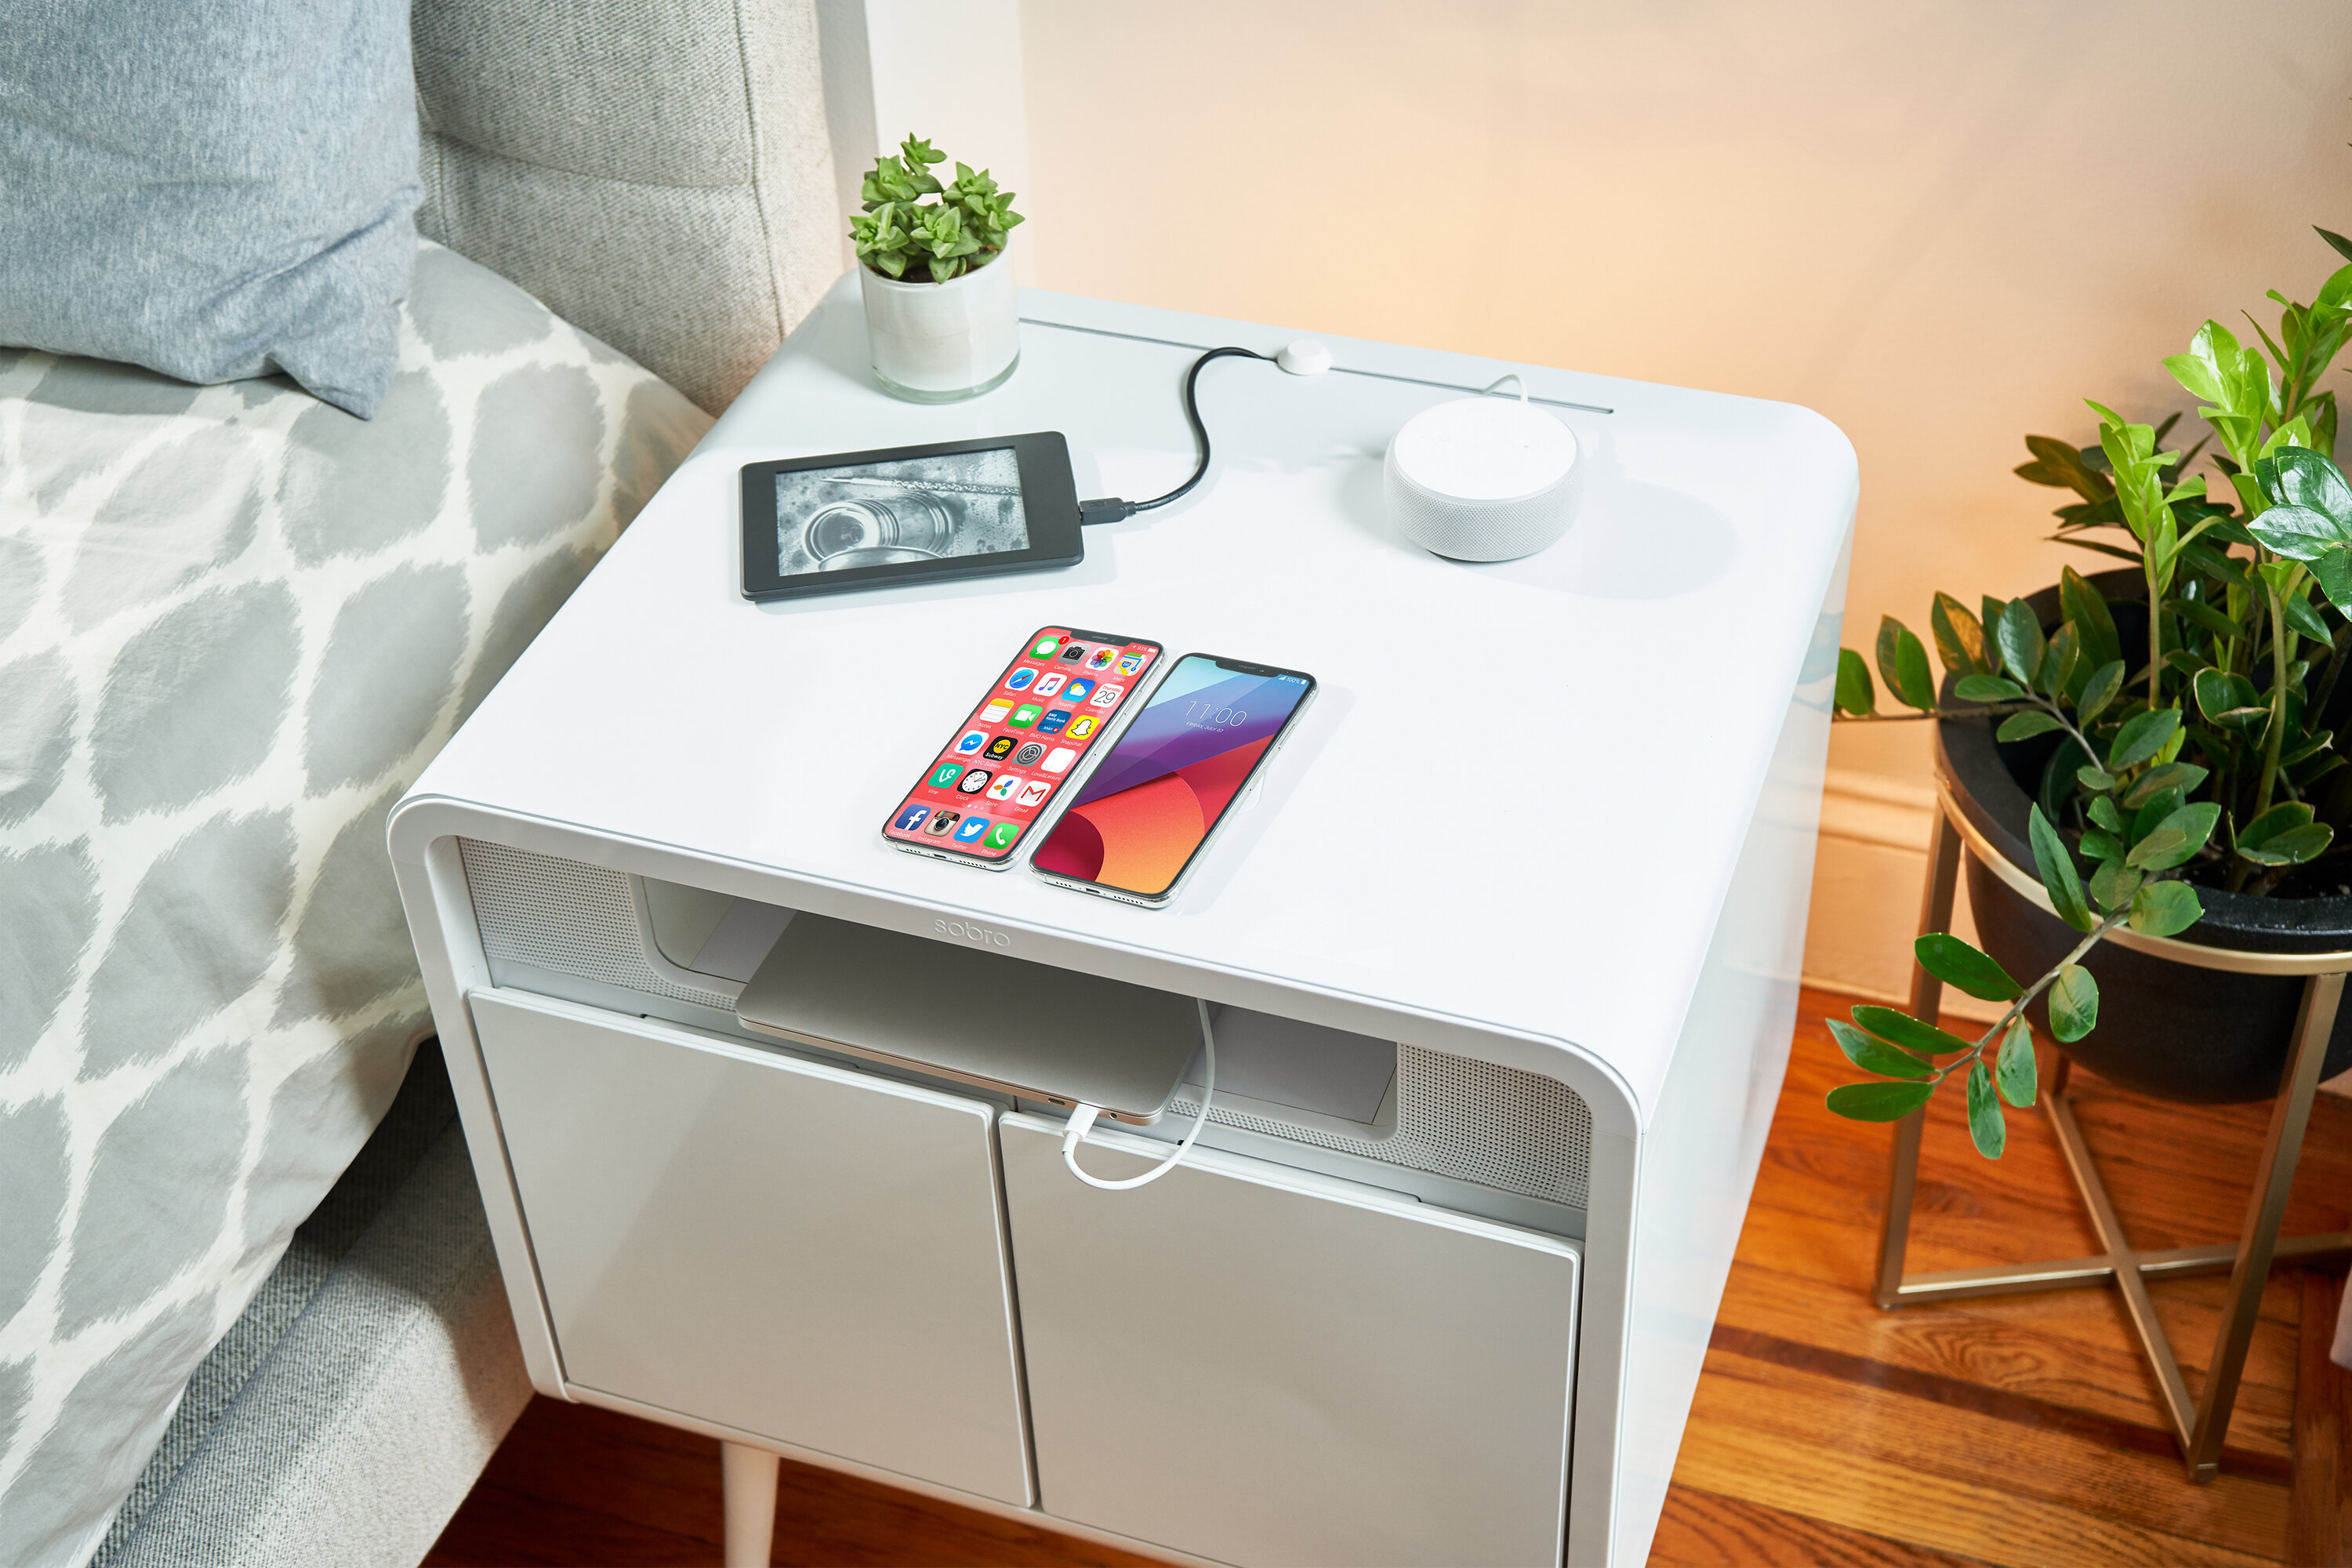 End Tables Organizer Tables For Bedroom Living Room Wood White Nightstand With Legs Home Storage Unit Modern Slim End Table Bedside Cabinet Beyonds Bedside Table 2 Drawers Set Of 2 Home